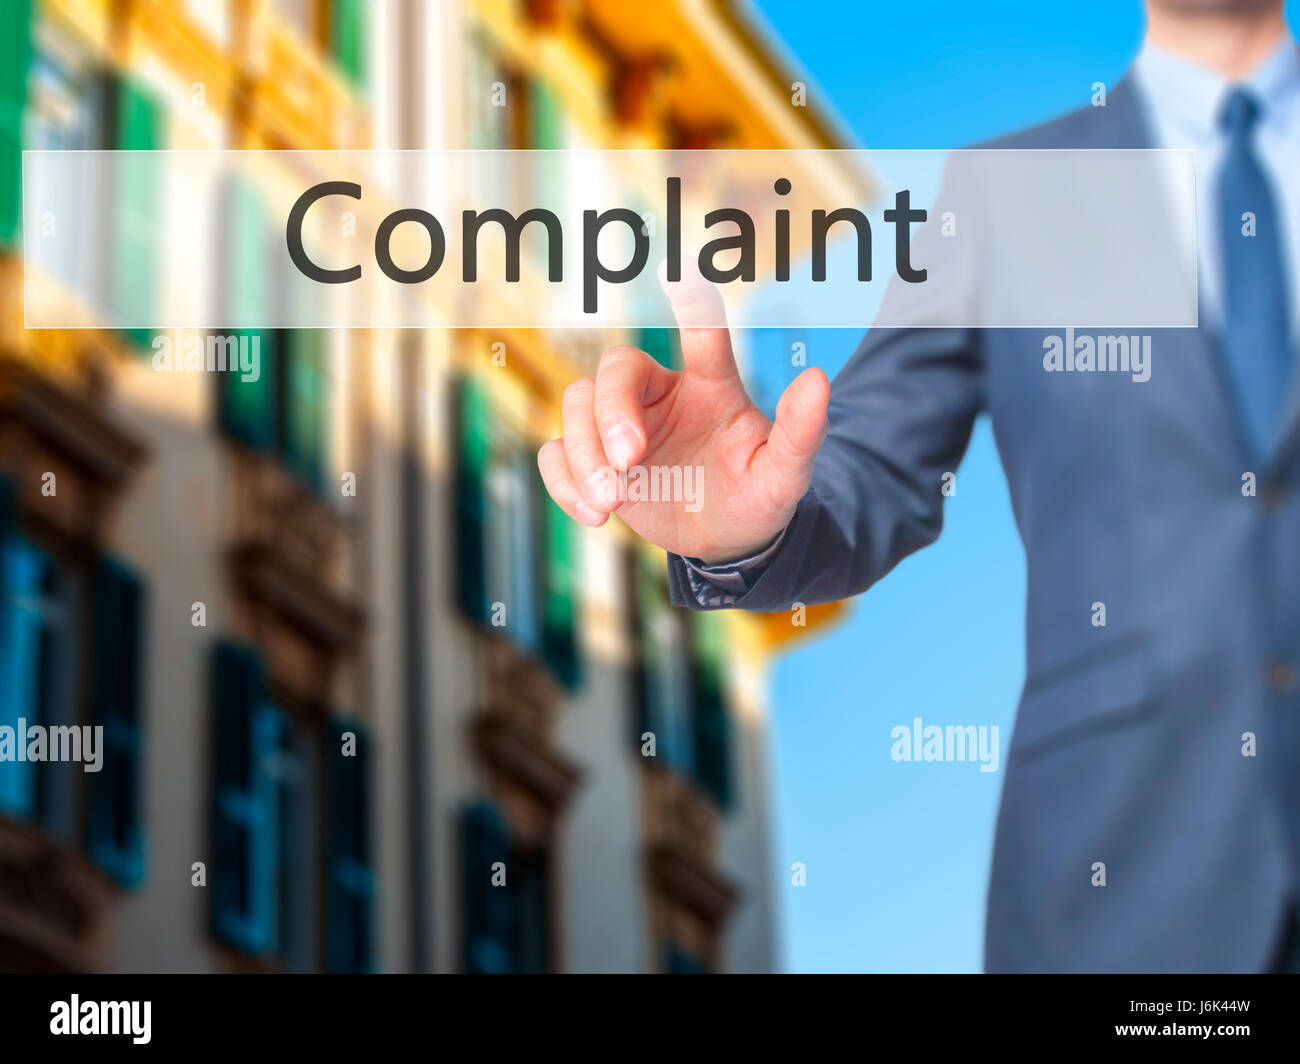 Complaint - Businessman click on virtual touchscreen. Business and IT concept. Stock Photo - Stock Image